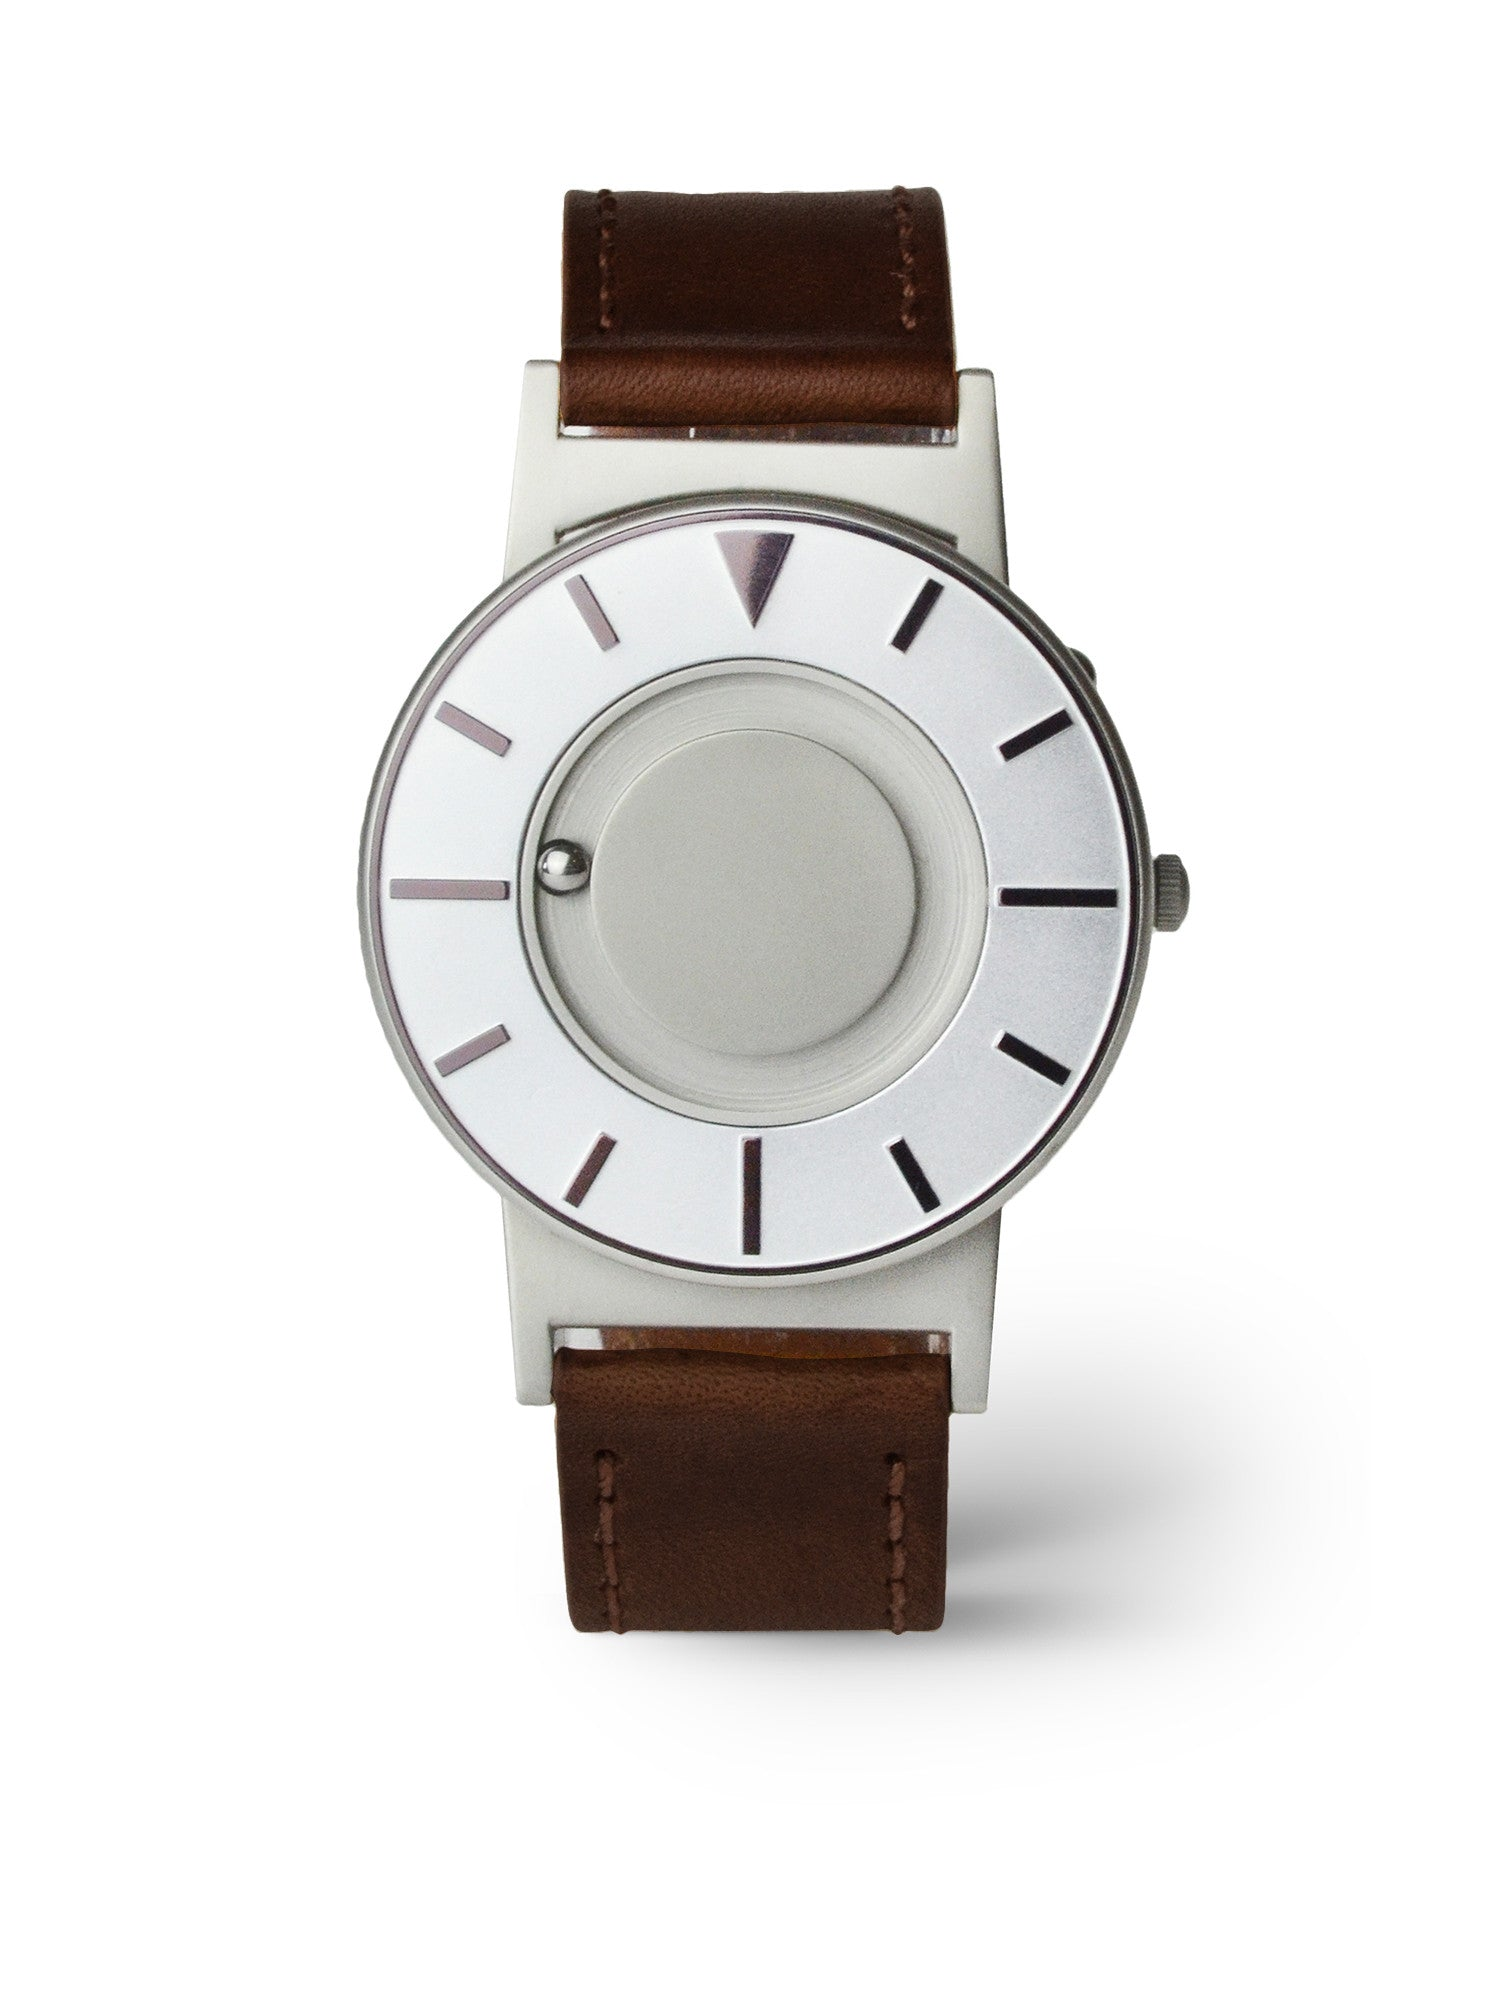 Bradley Iris Leather Wood